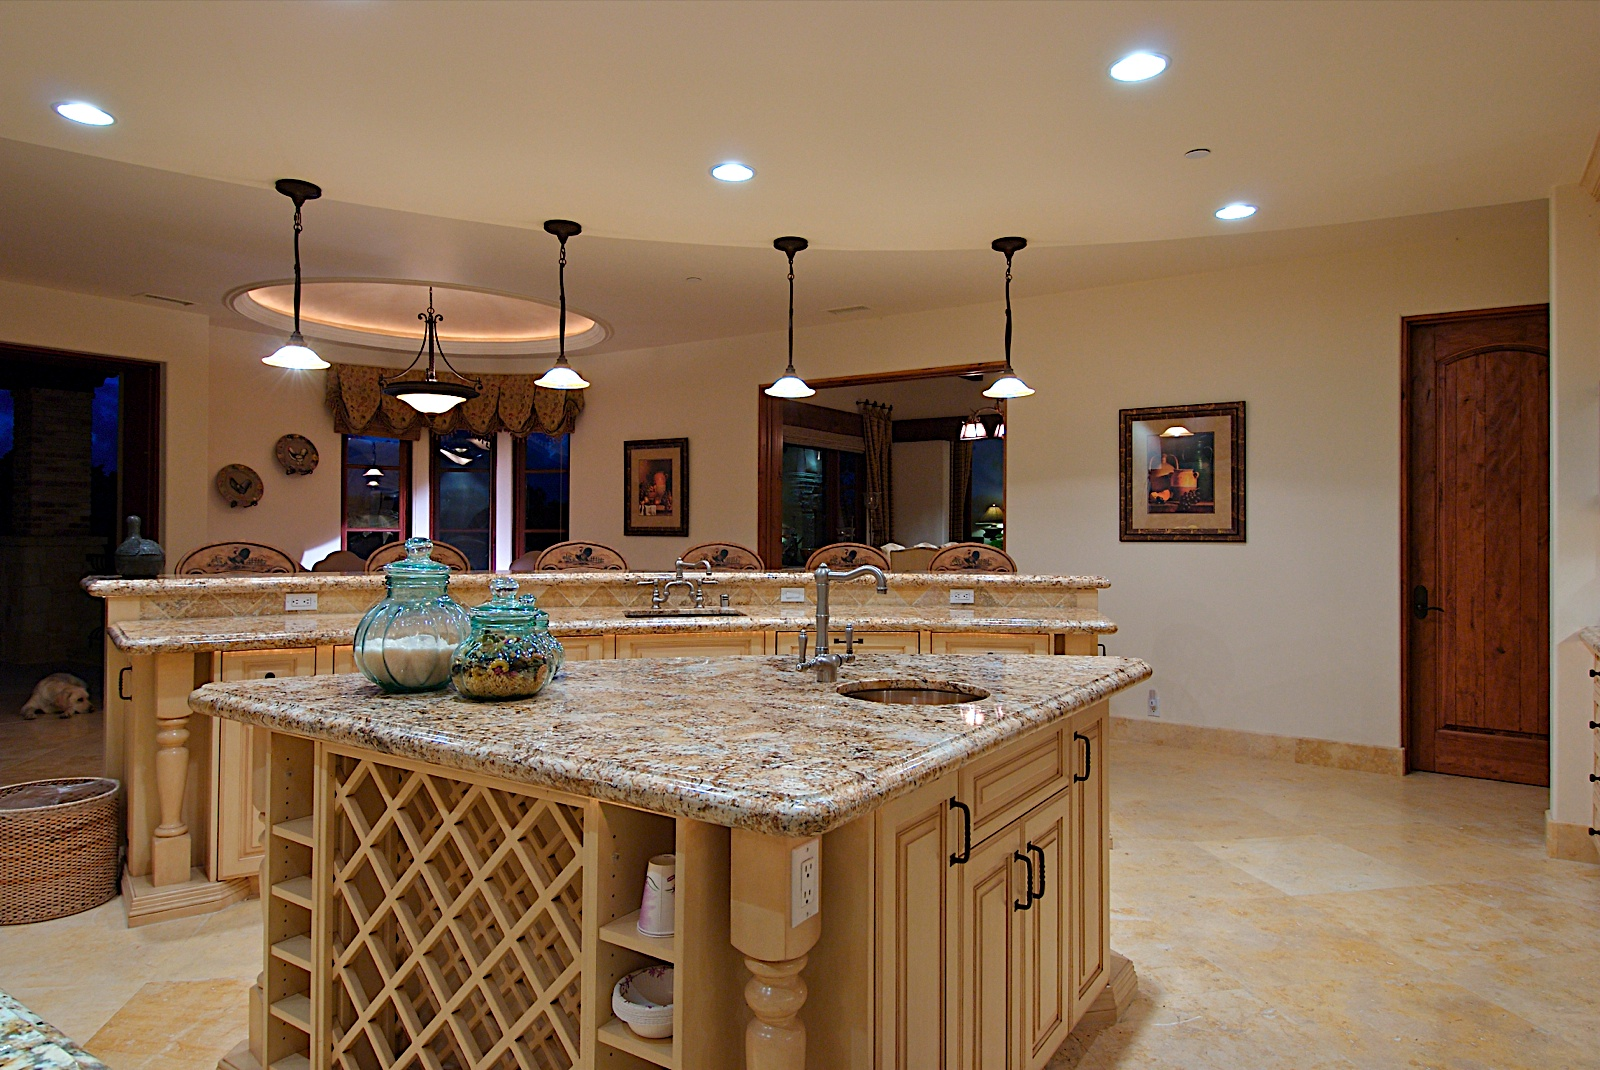 Kitchen Lighting Design Tips: How To Build A Kitchen Island